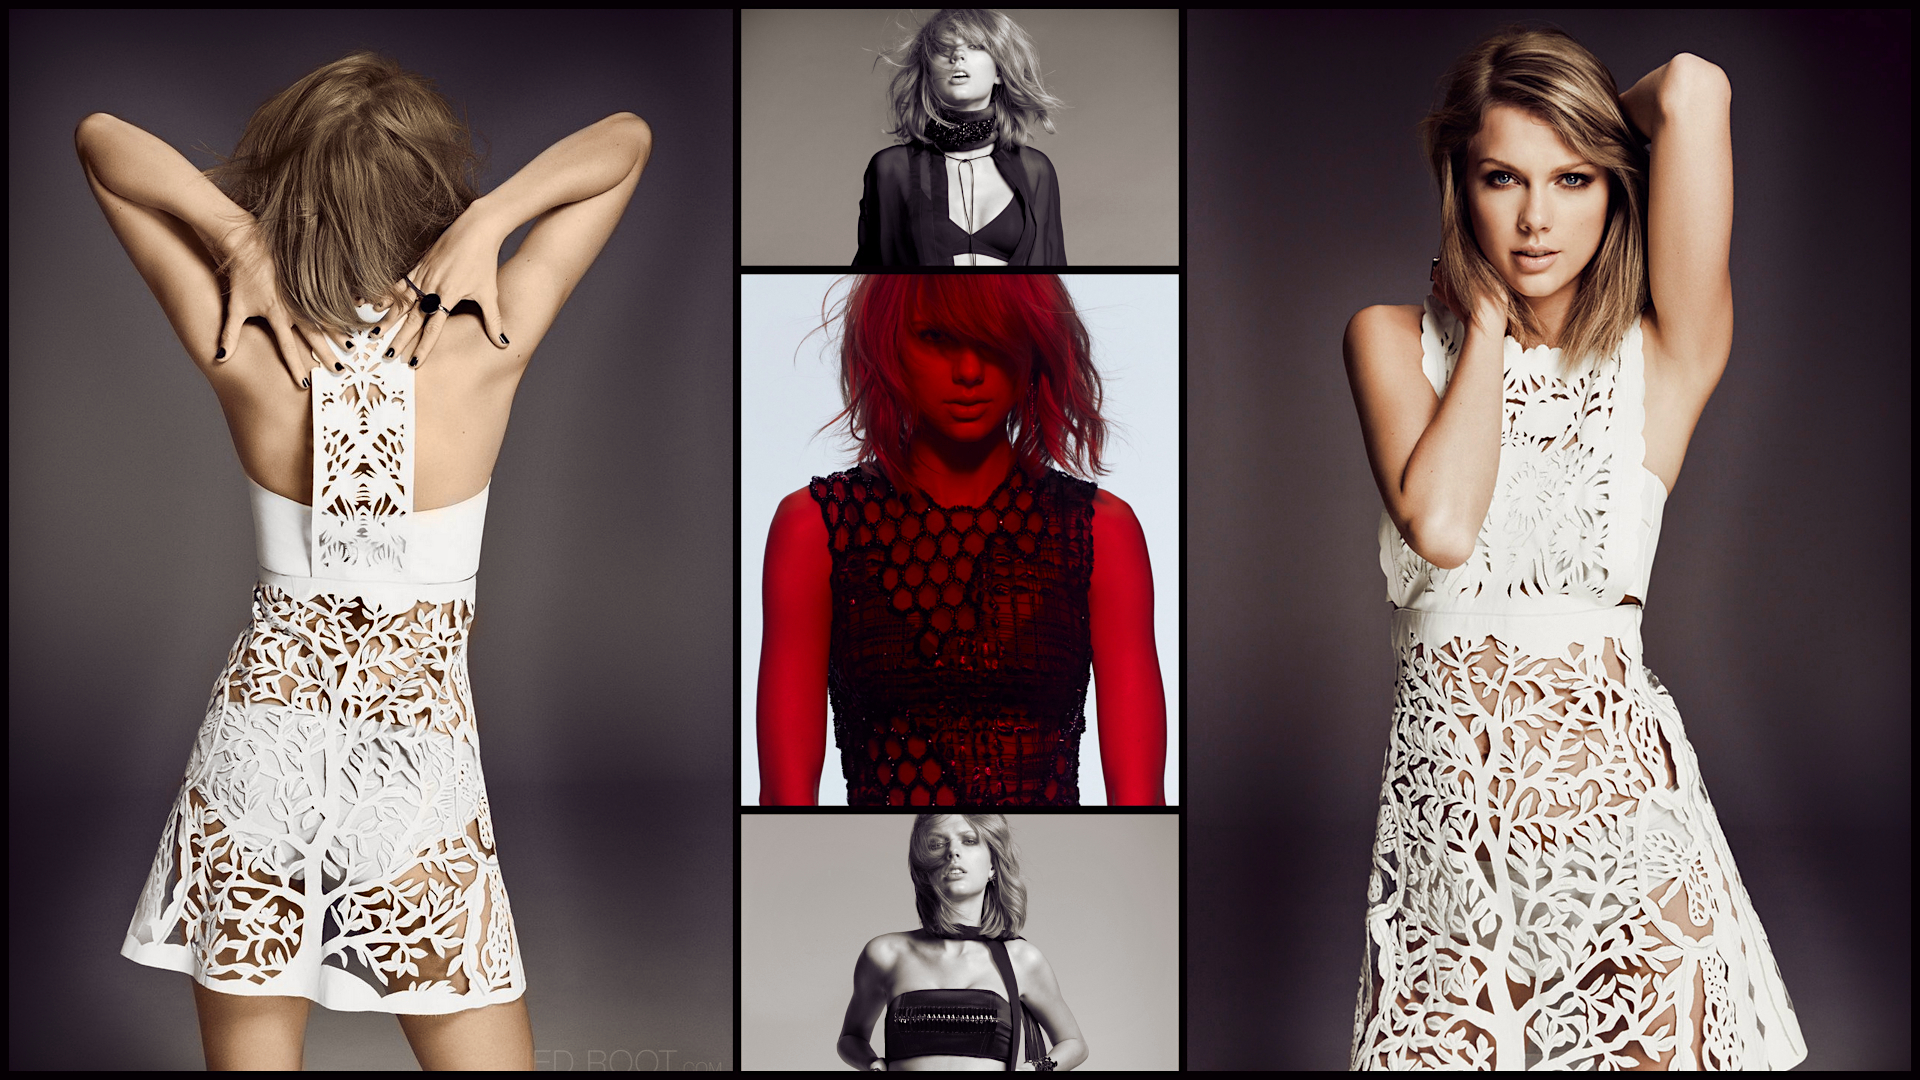 Taylor Swift 2015 Glamour Uk Collage 1080p By Devilfish89 On Deviantart